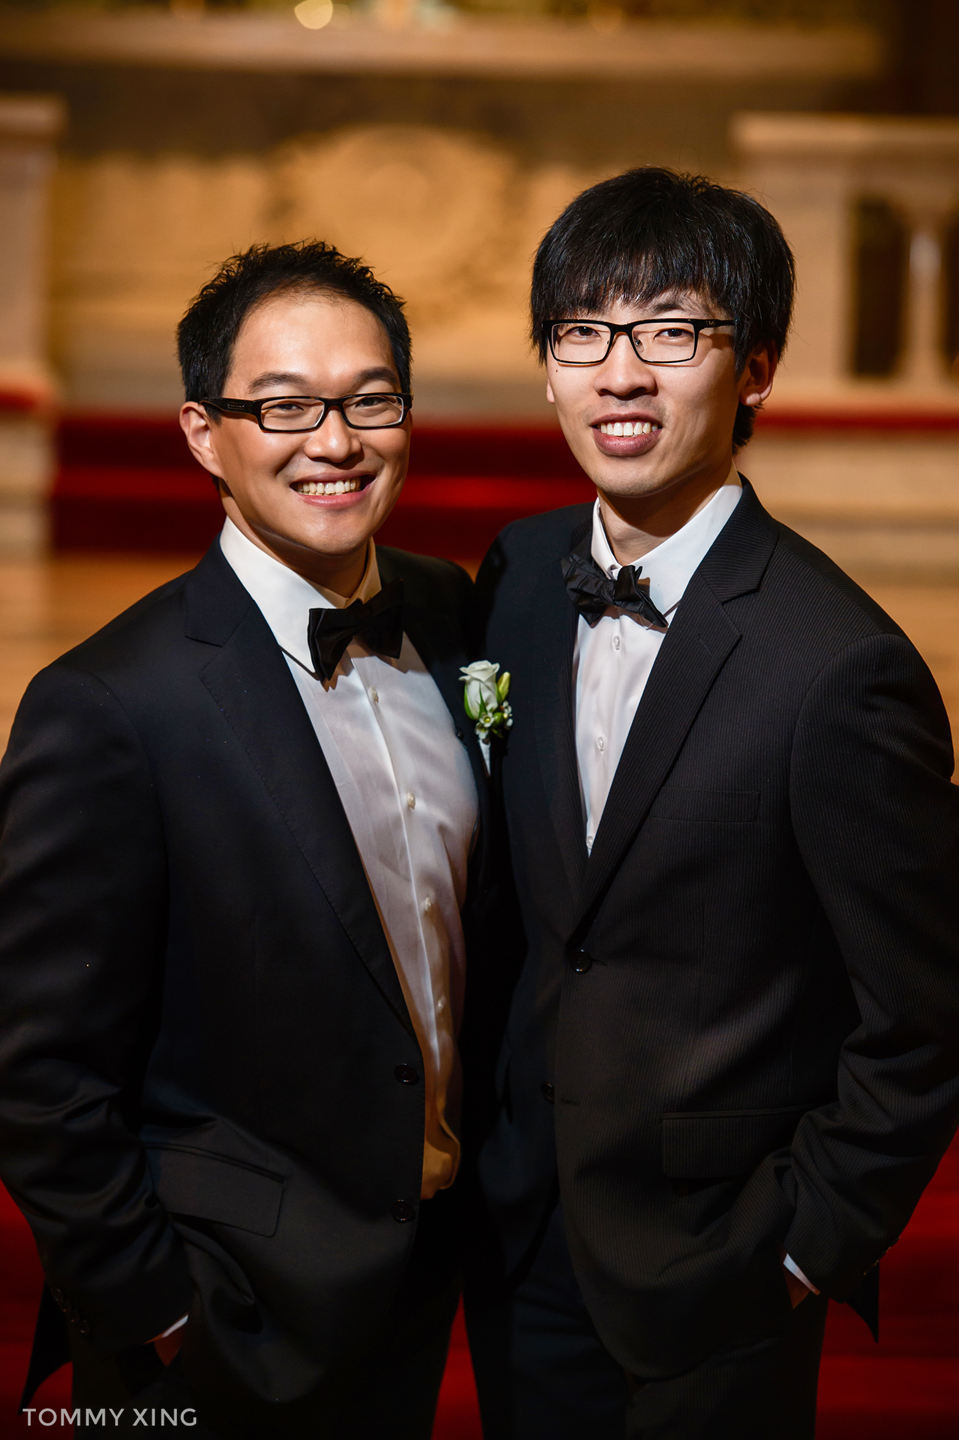 STANFORD MEMORIAL CHURCH WEDDING SAN FRANCISCO BAY AREA 斯坦福教堂婚礼 洛杉矶婚礼婚纱摄影师  Tommy Xing 63.jpg